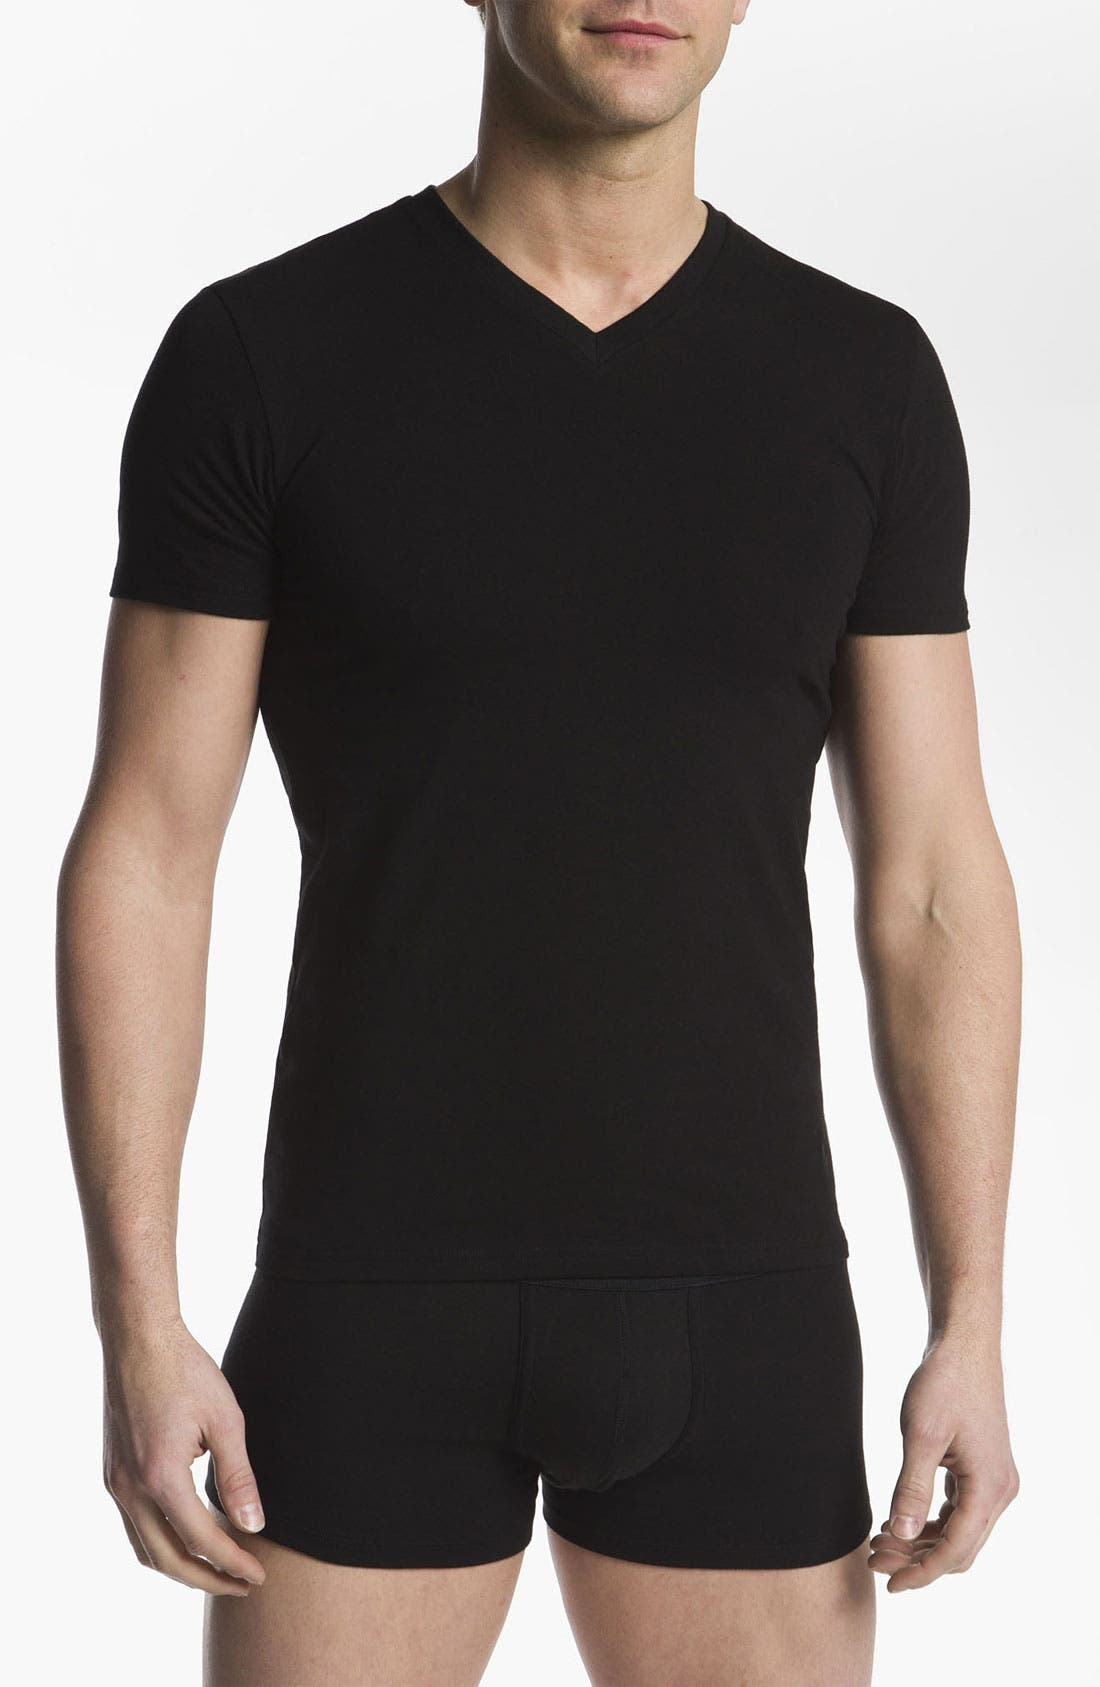 Main Image - Polo Ralph Lauren Stretch Cotton V-Neck T-Shirt (2-Pack)